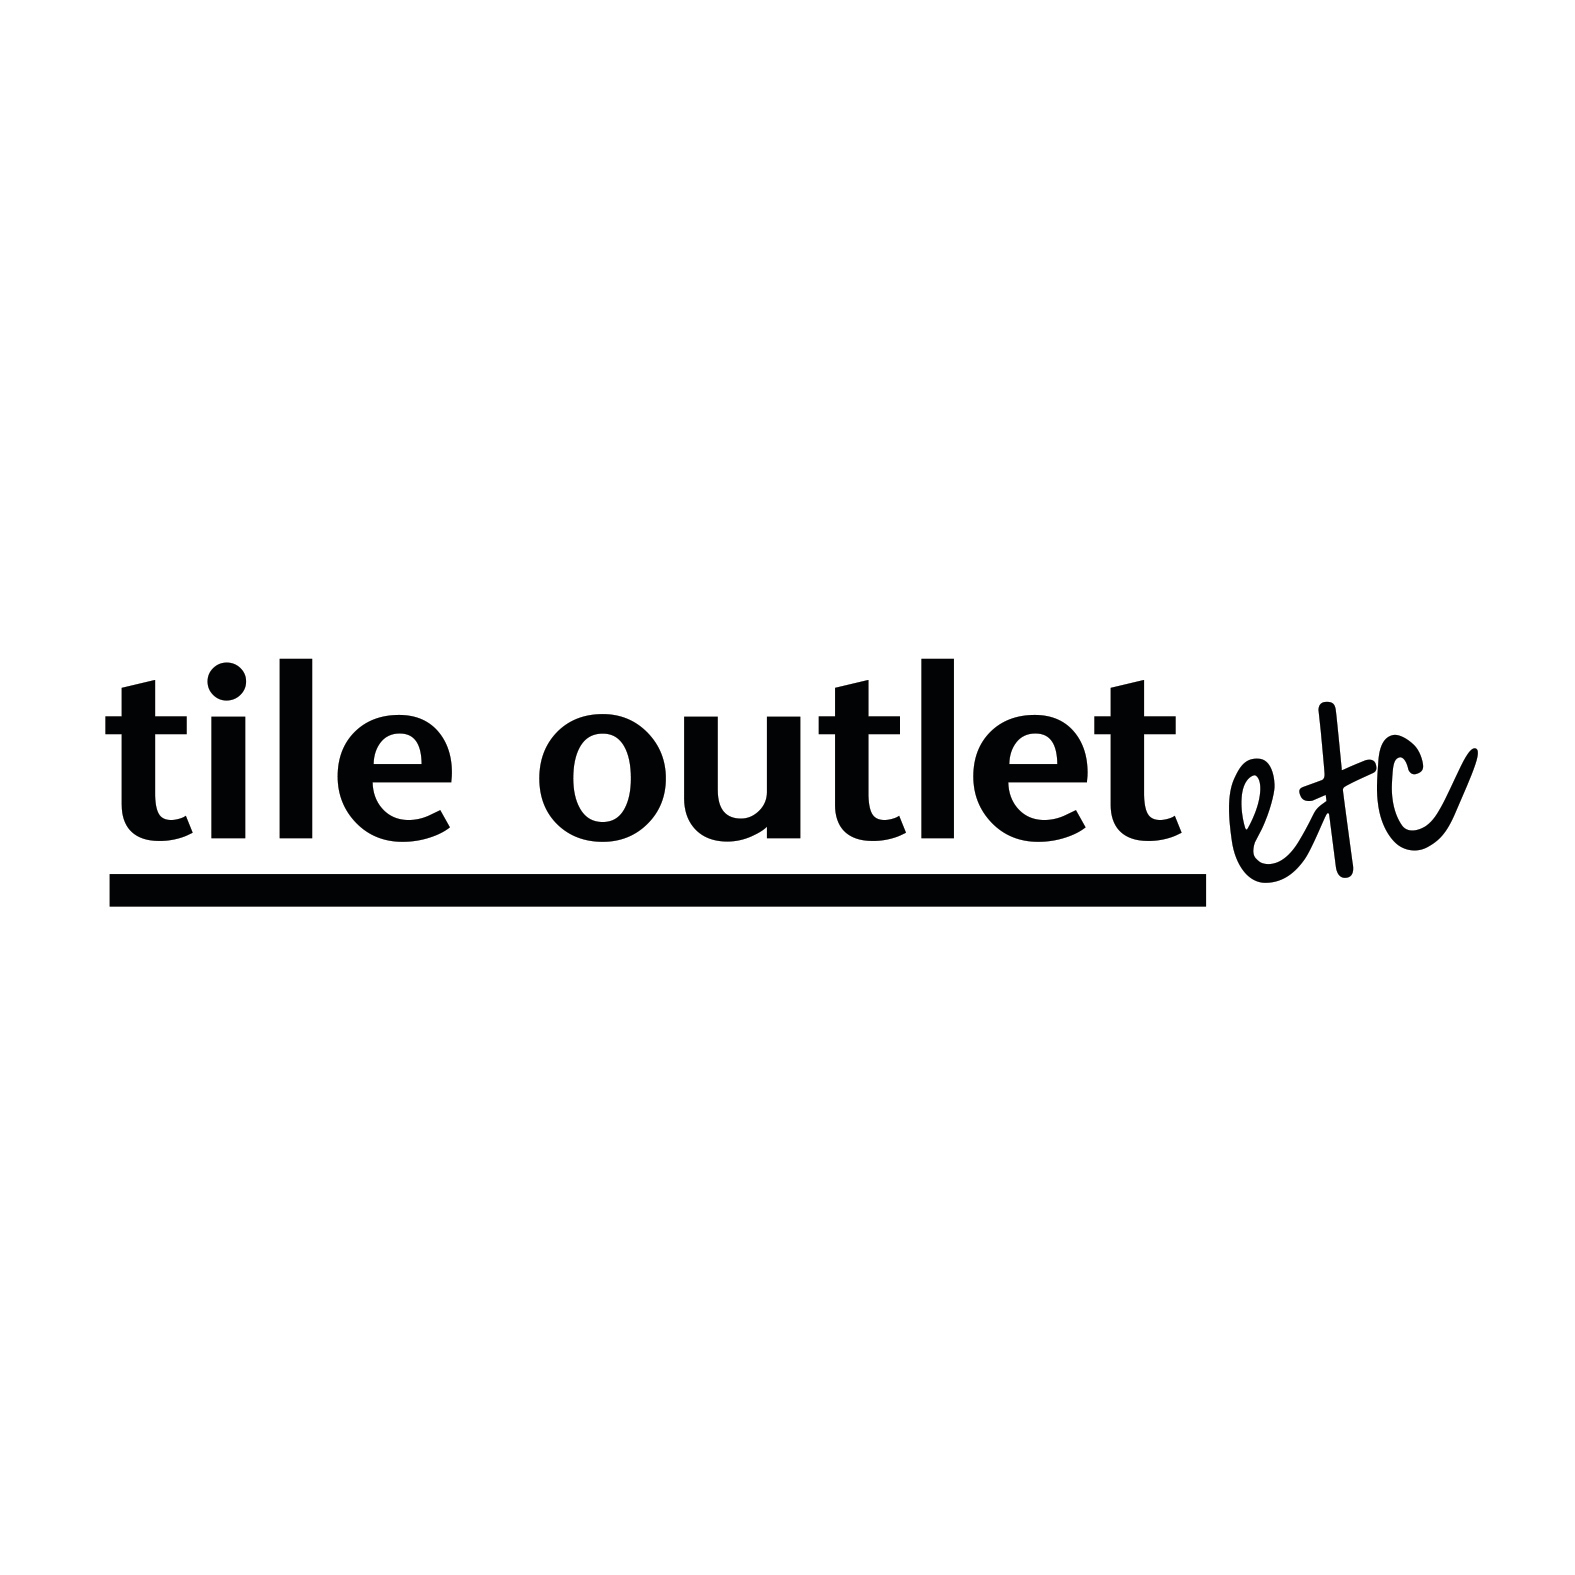 Tile Outlet, Etc.